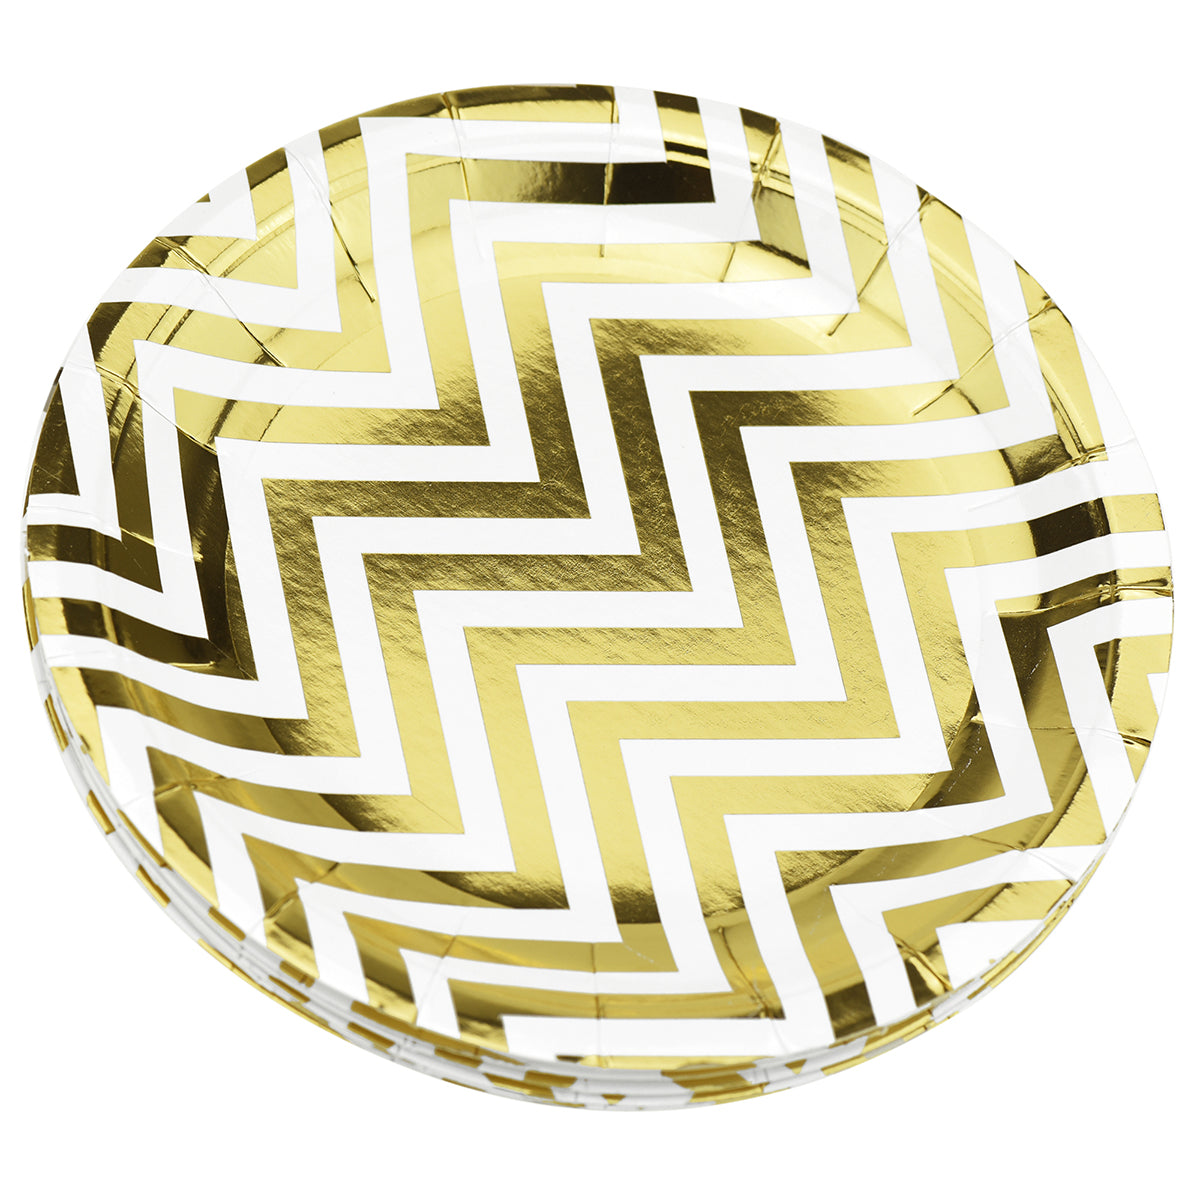 16 stacked large white and gold zigzag design round paper plates display with a white background